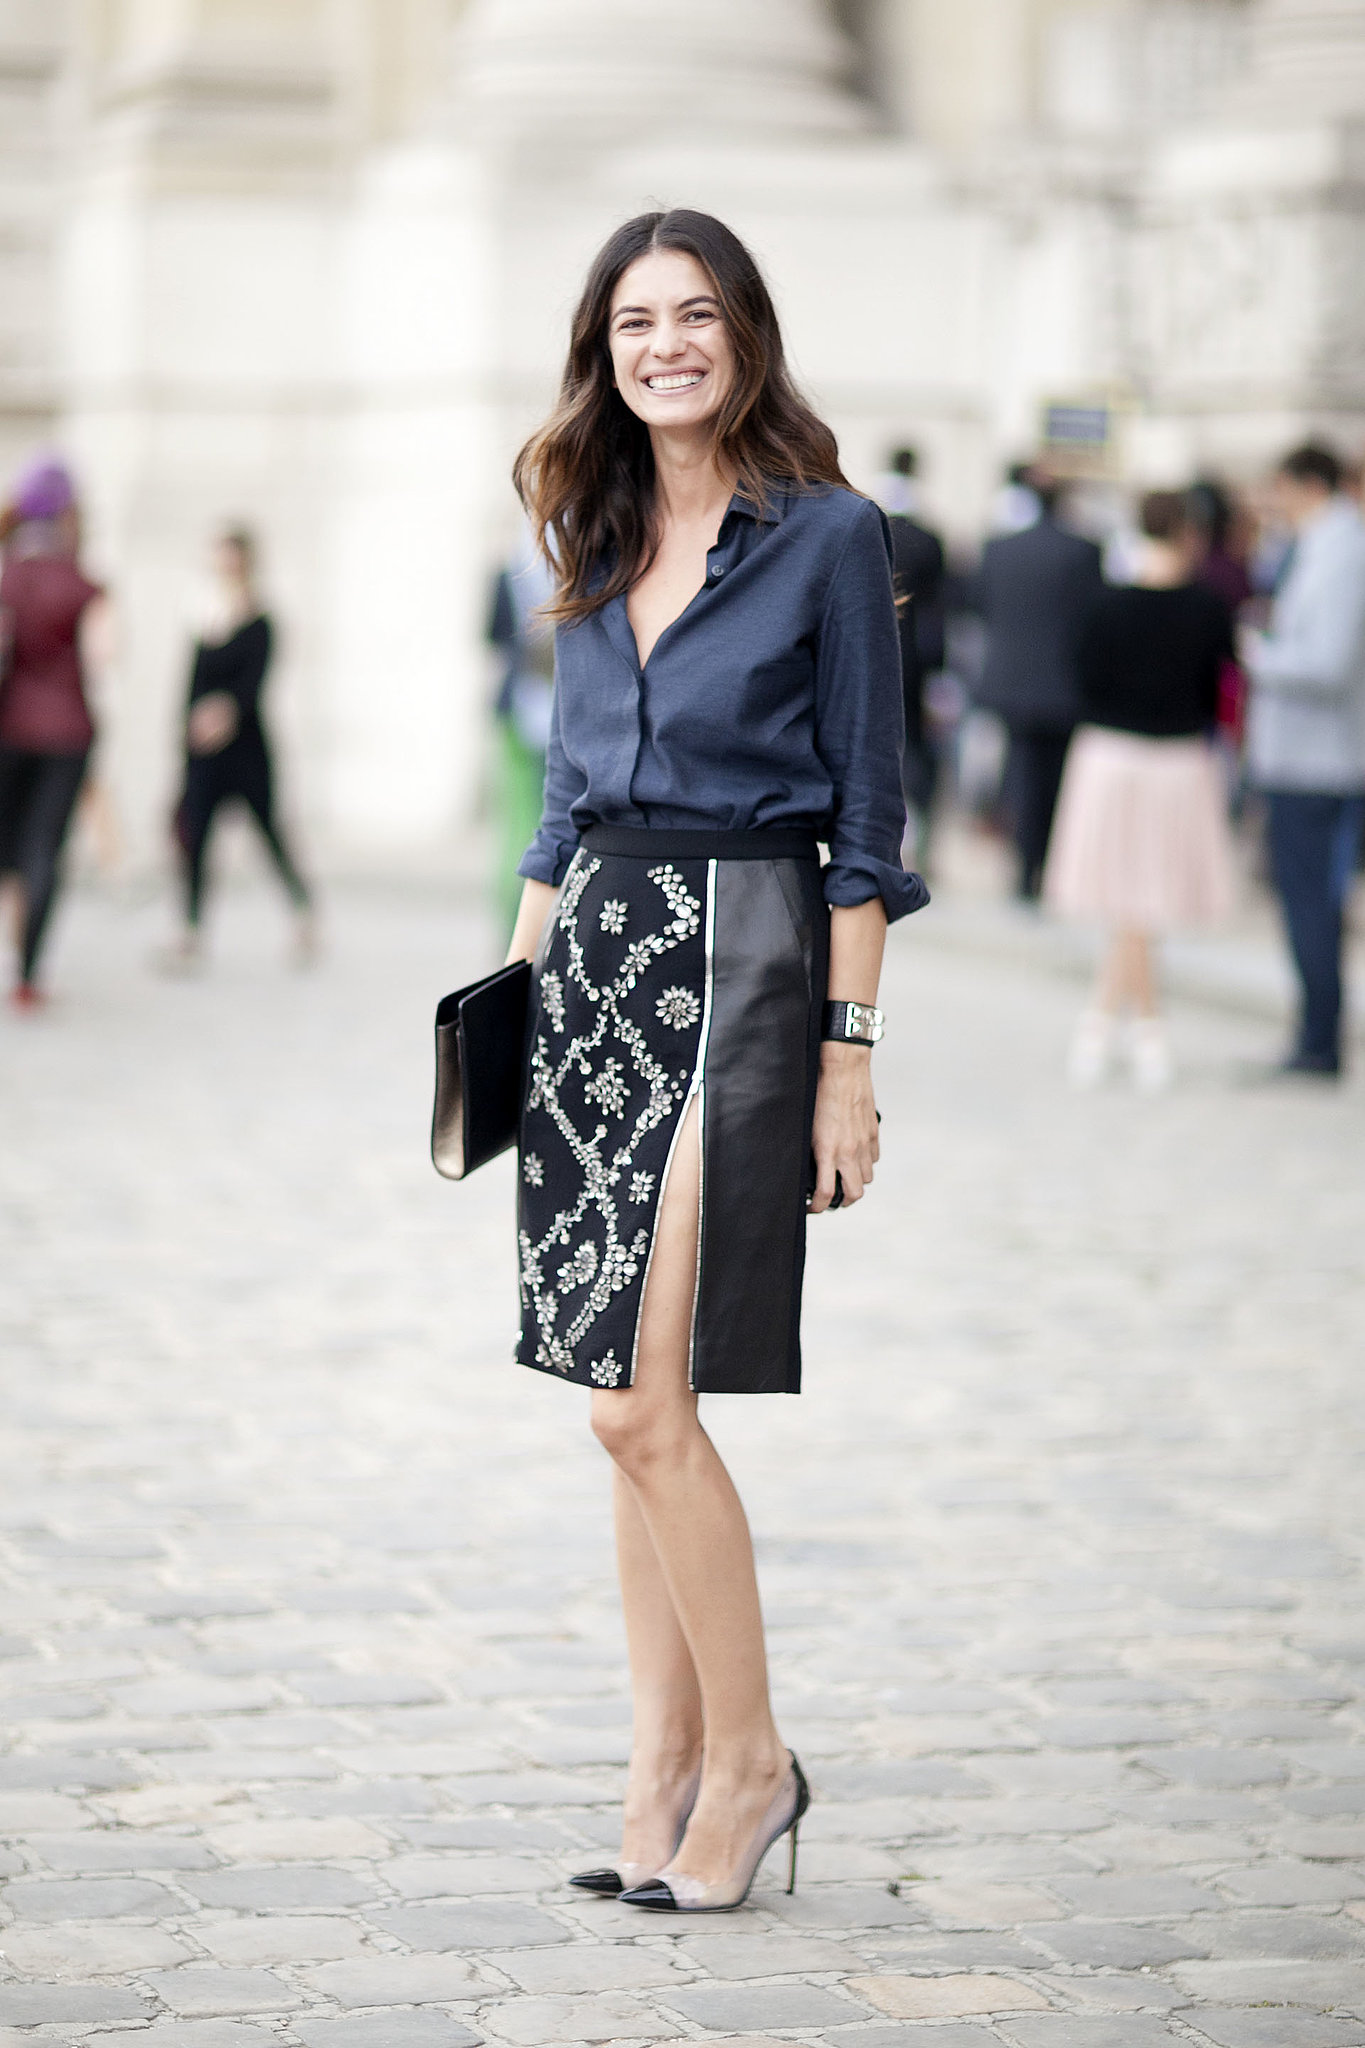 21 Fabulous Ways to Rock 'the Slit' This Fall